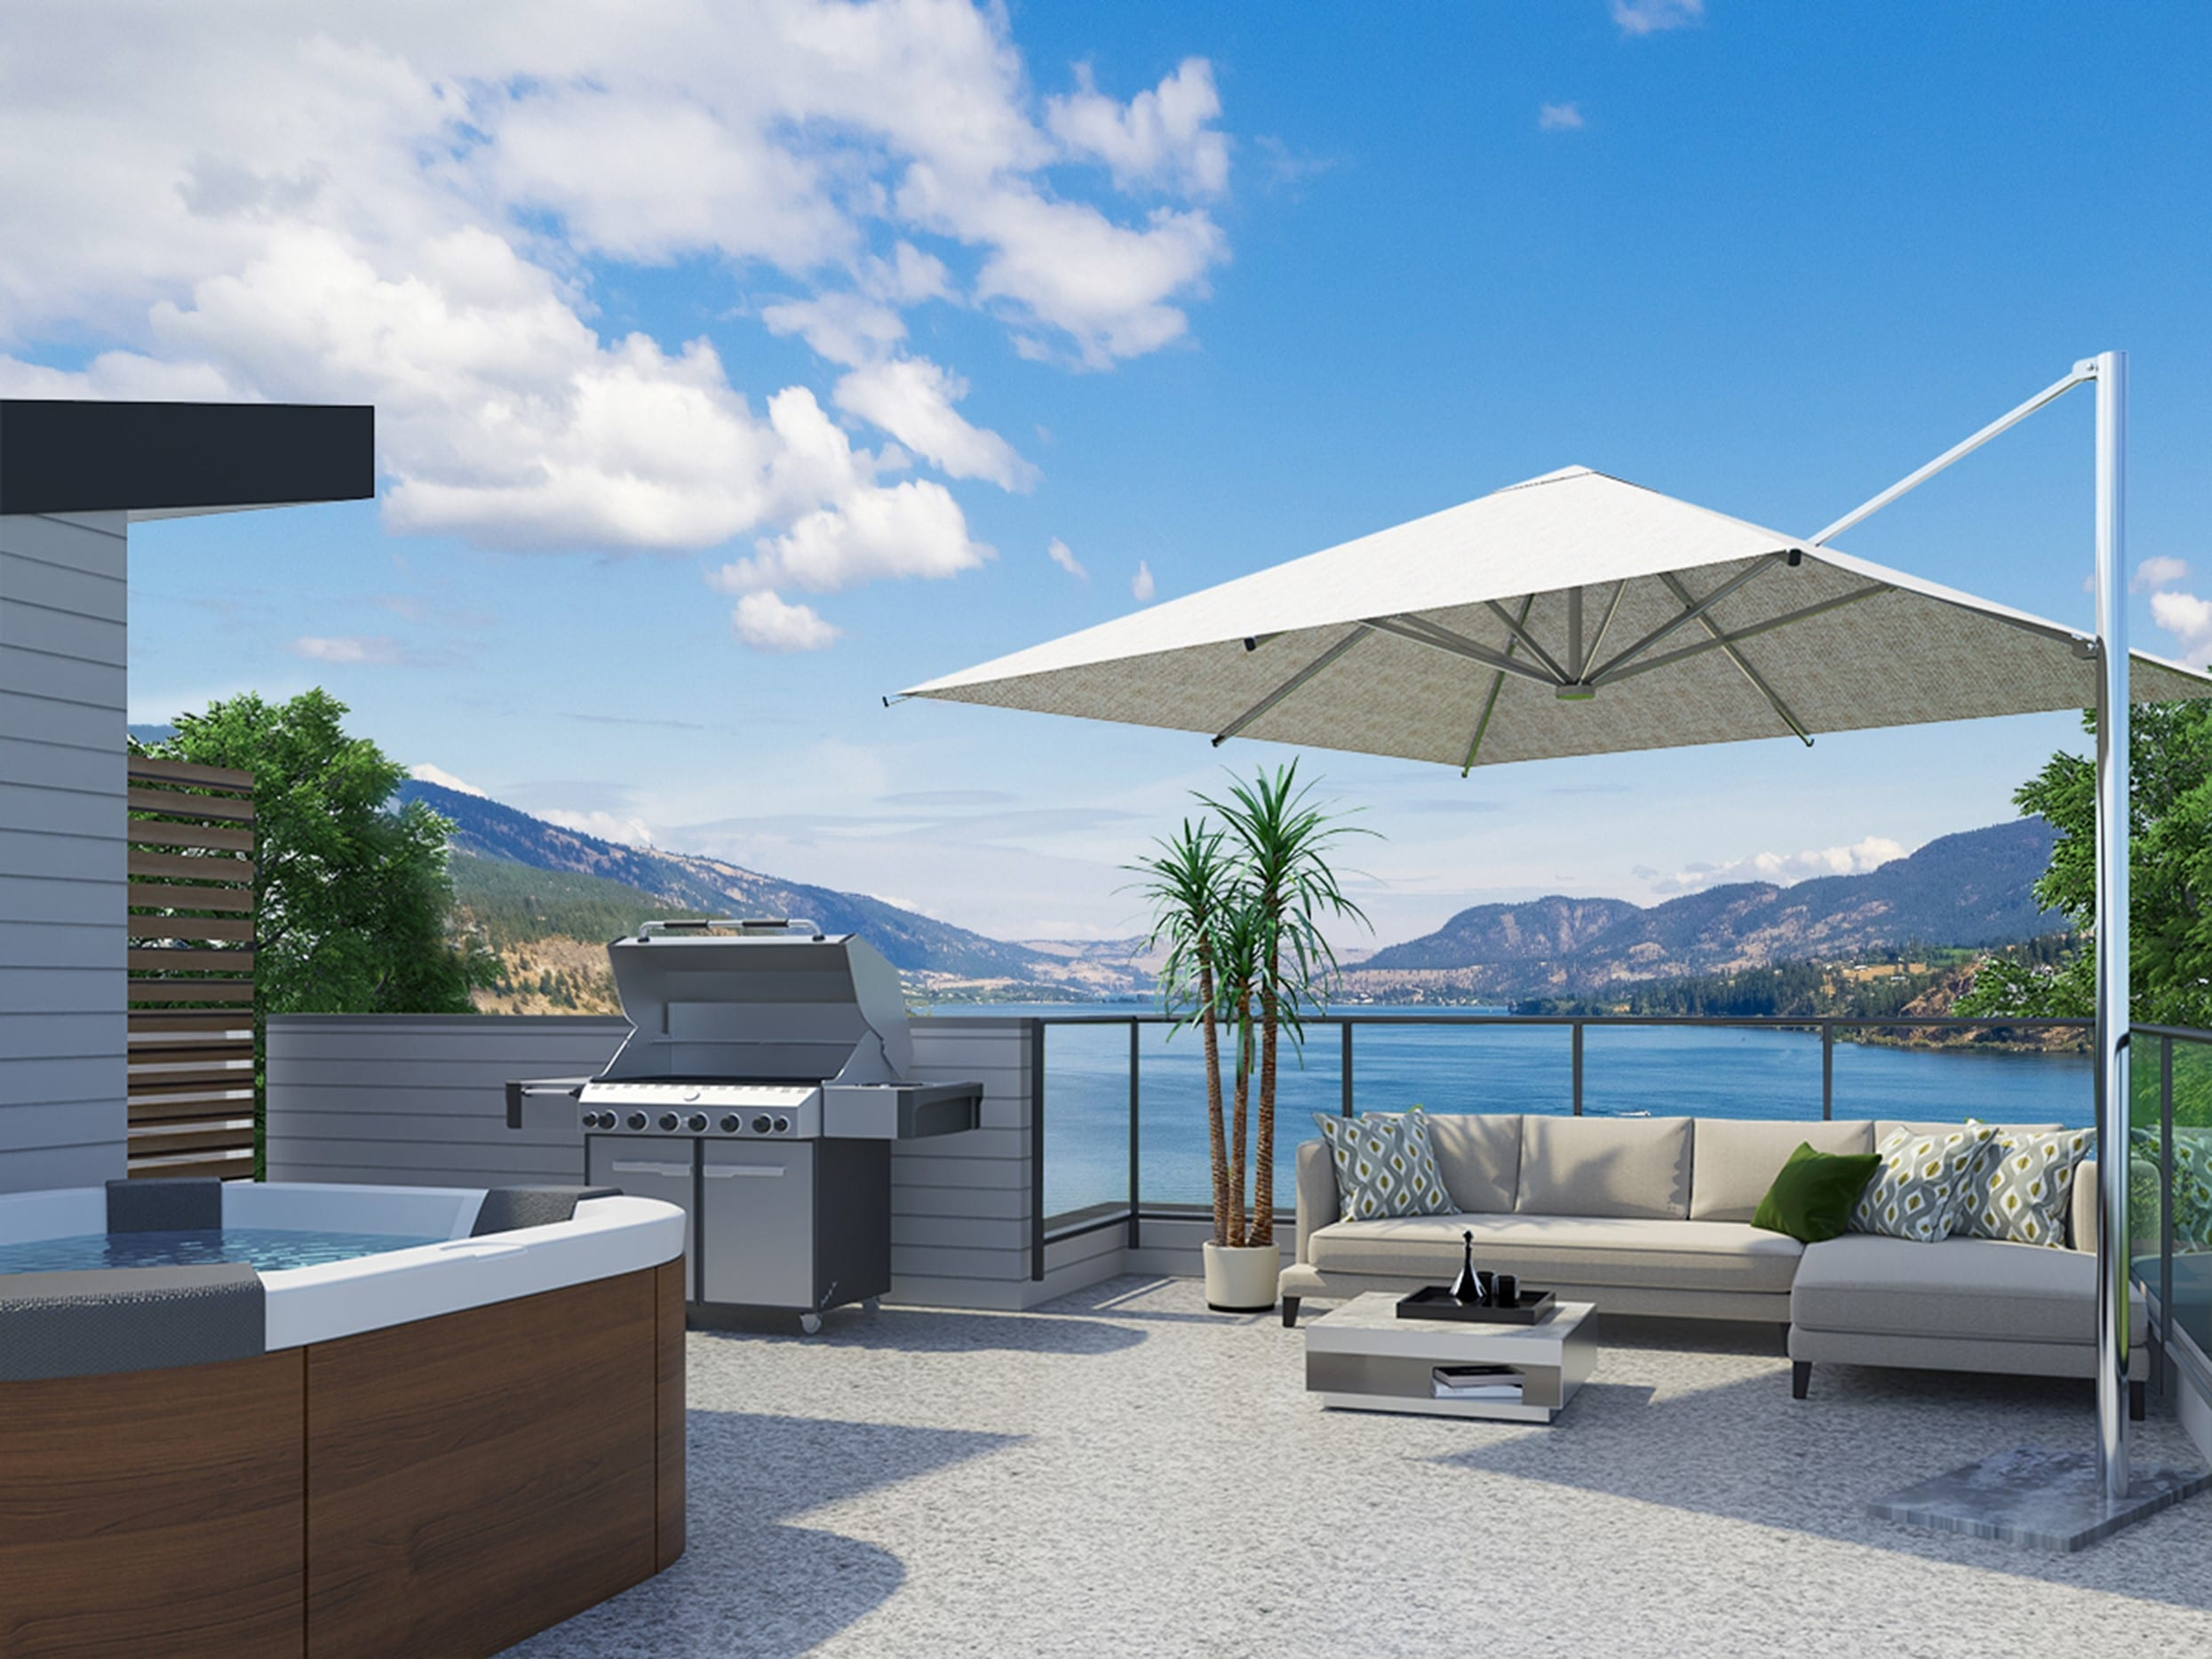 600+ sq. ft. rooftop patio with lake view at The Landing at Wood Lake